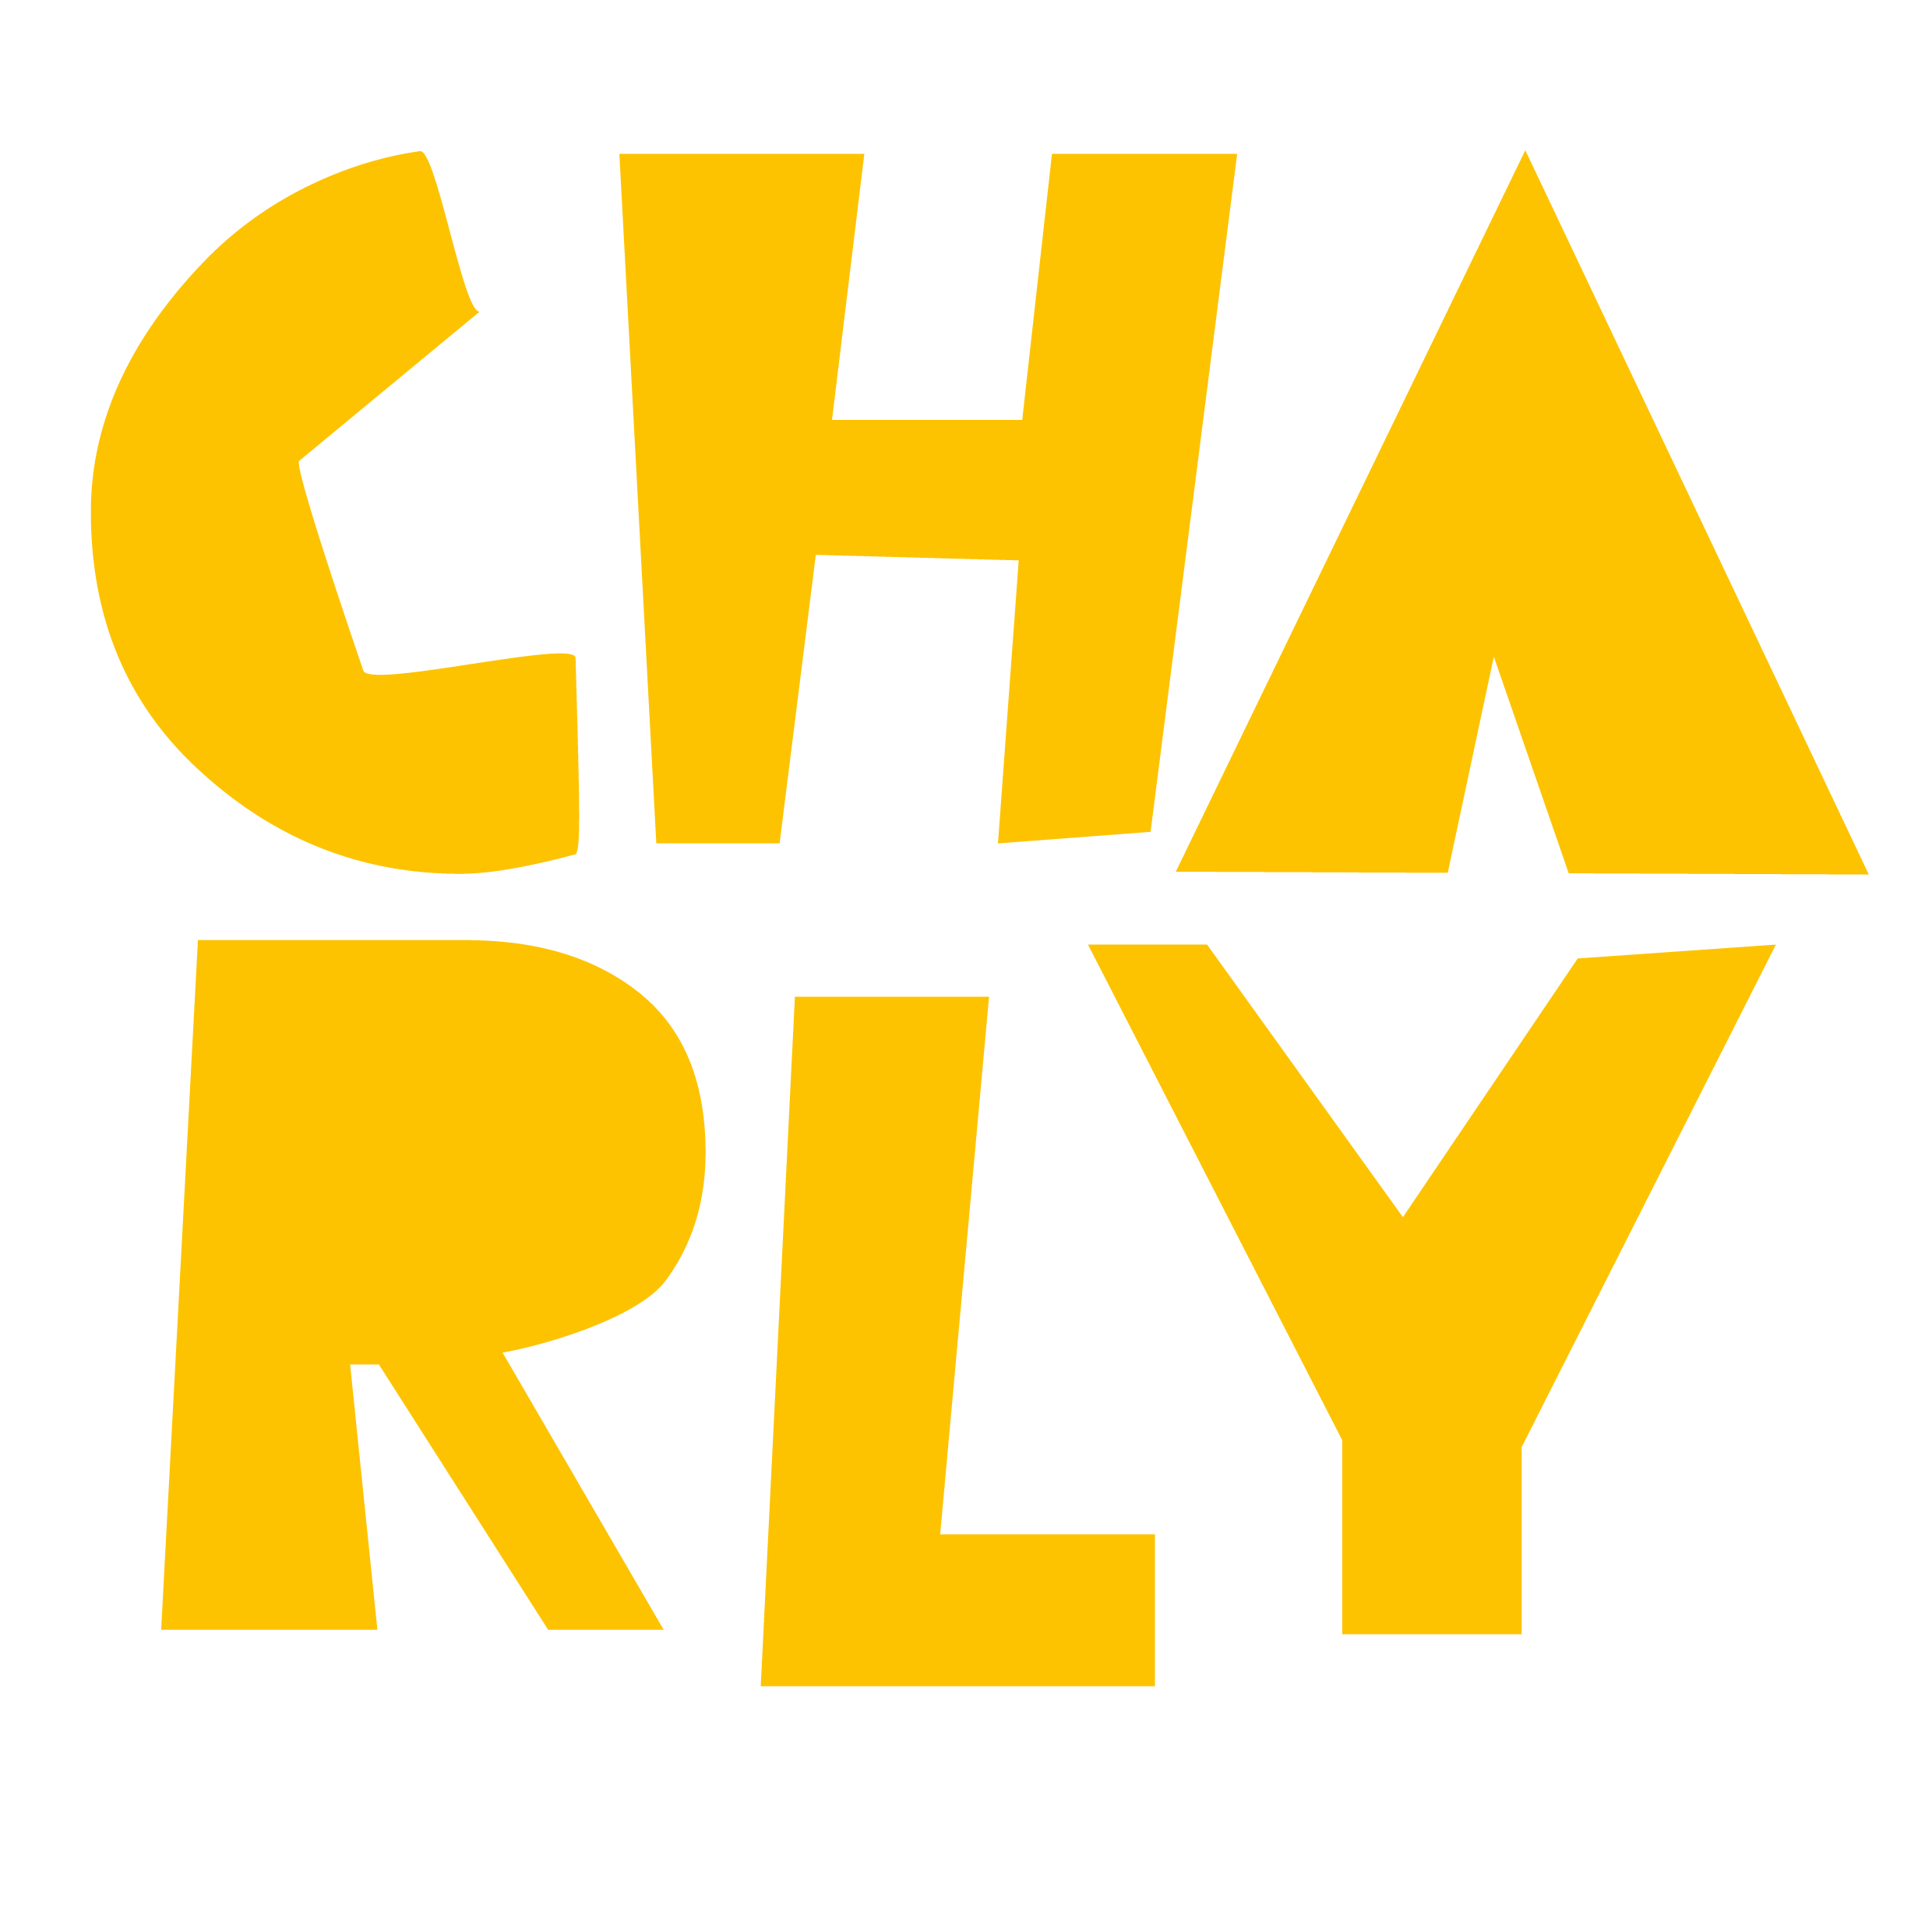 Checkpoint Charly